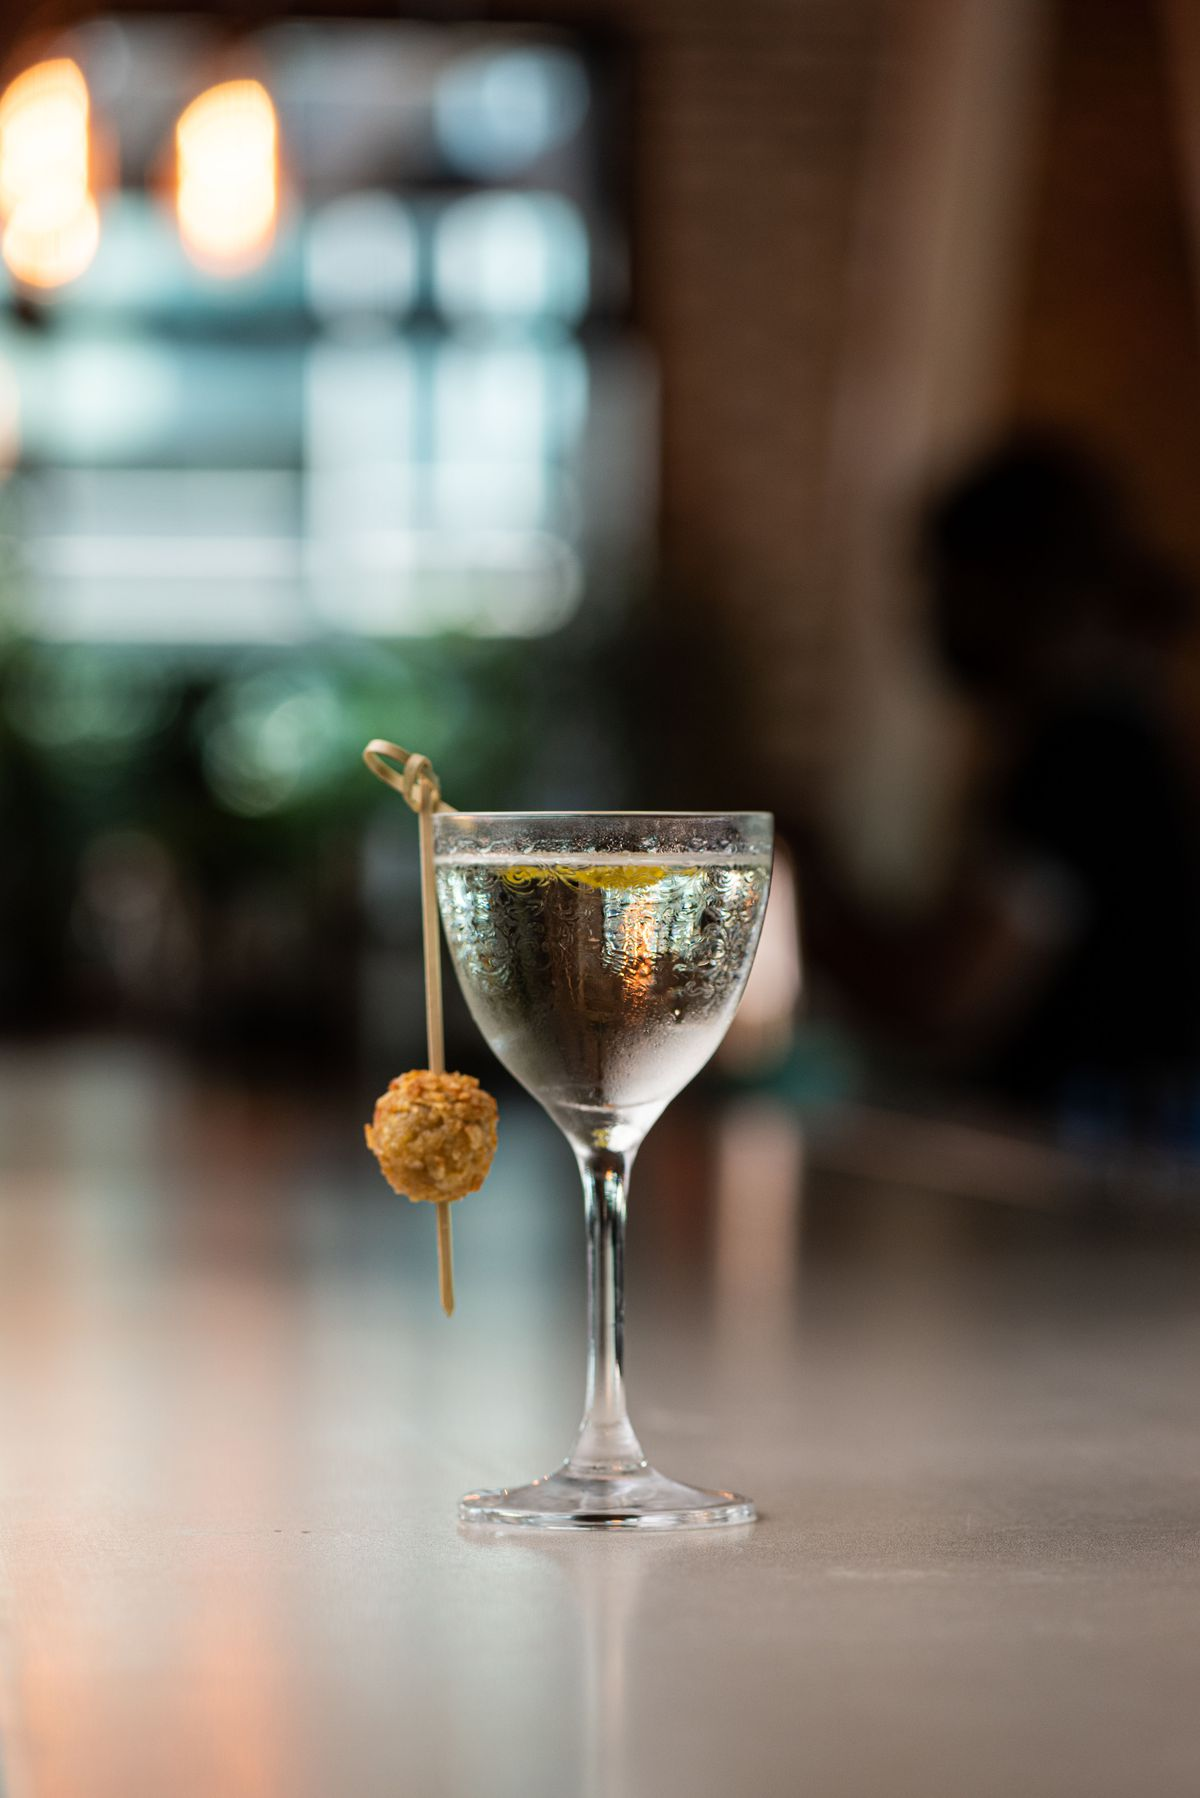 A clear cocktail with a hanging garnish in a glass.